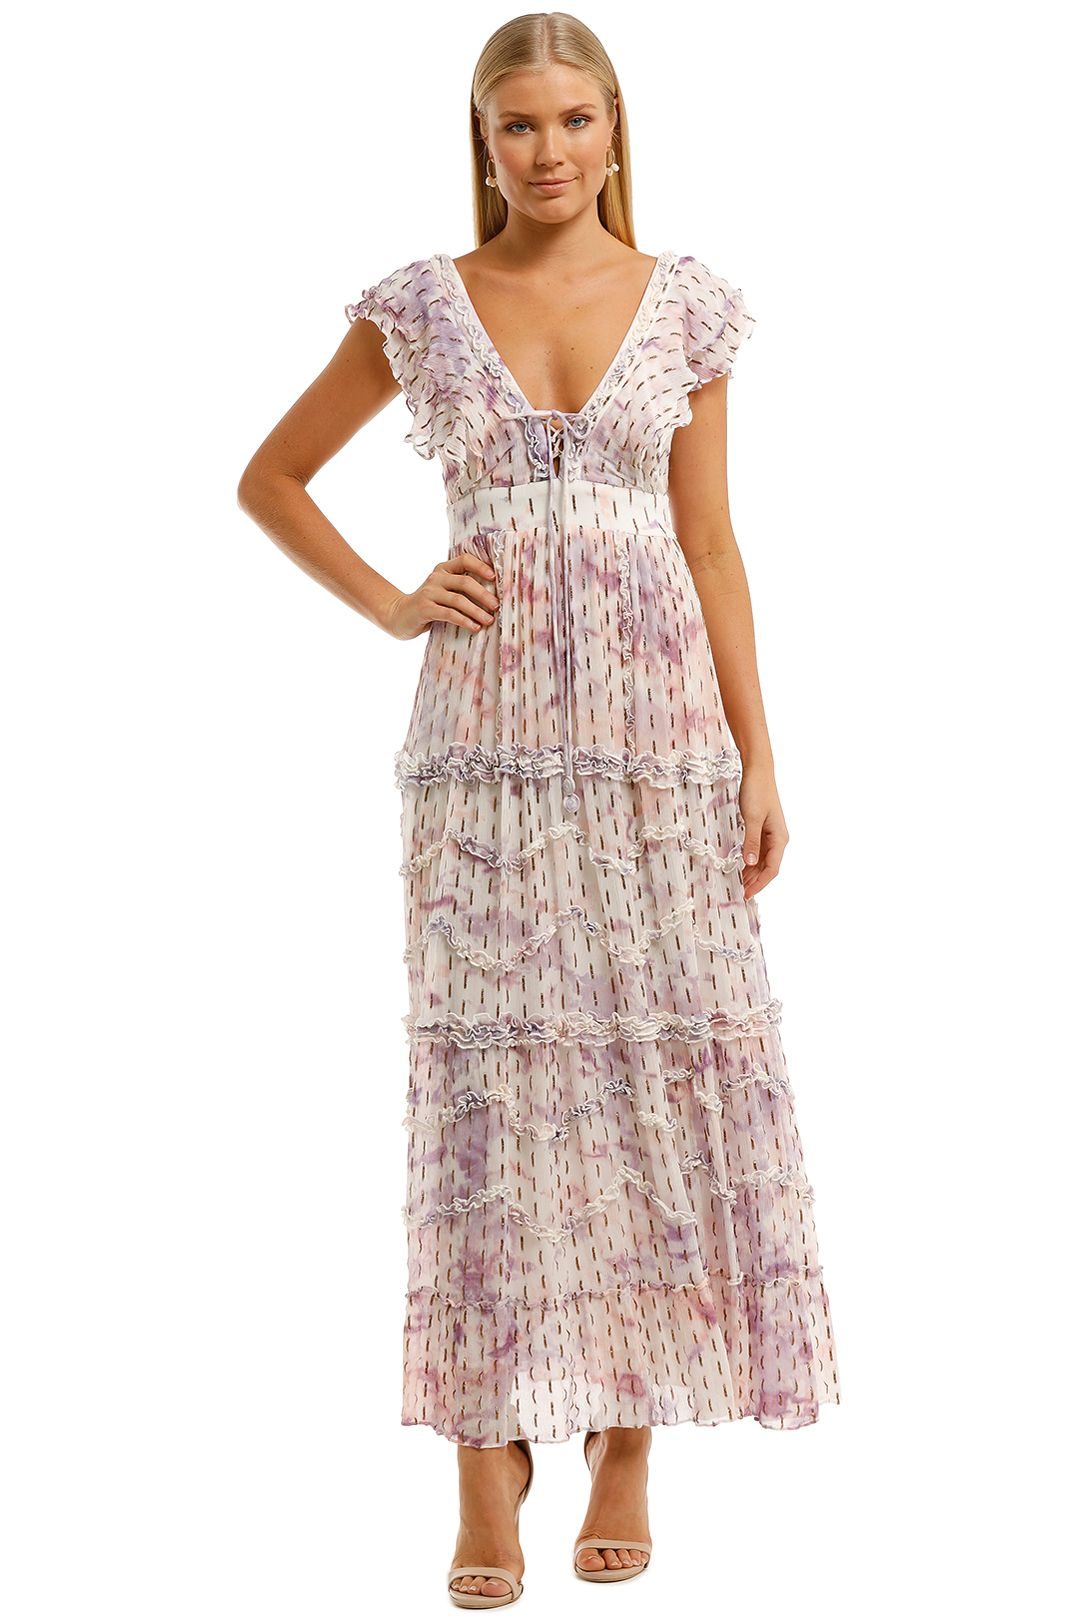 Hemant-Nandita-Vivir-Long-Midi-Dress-Print-Front